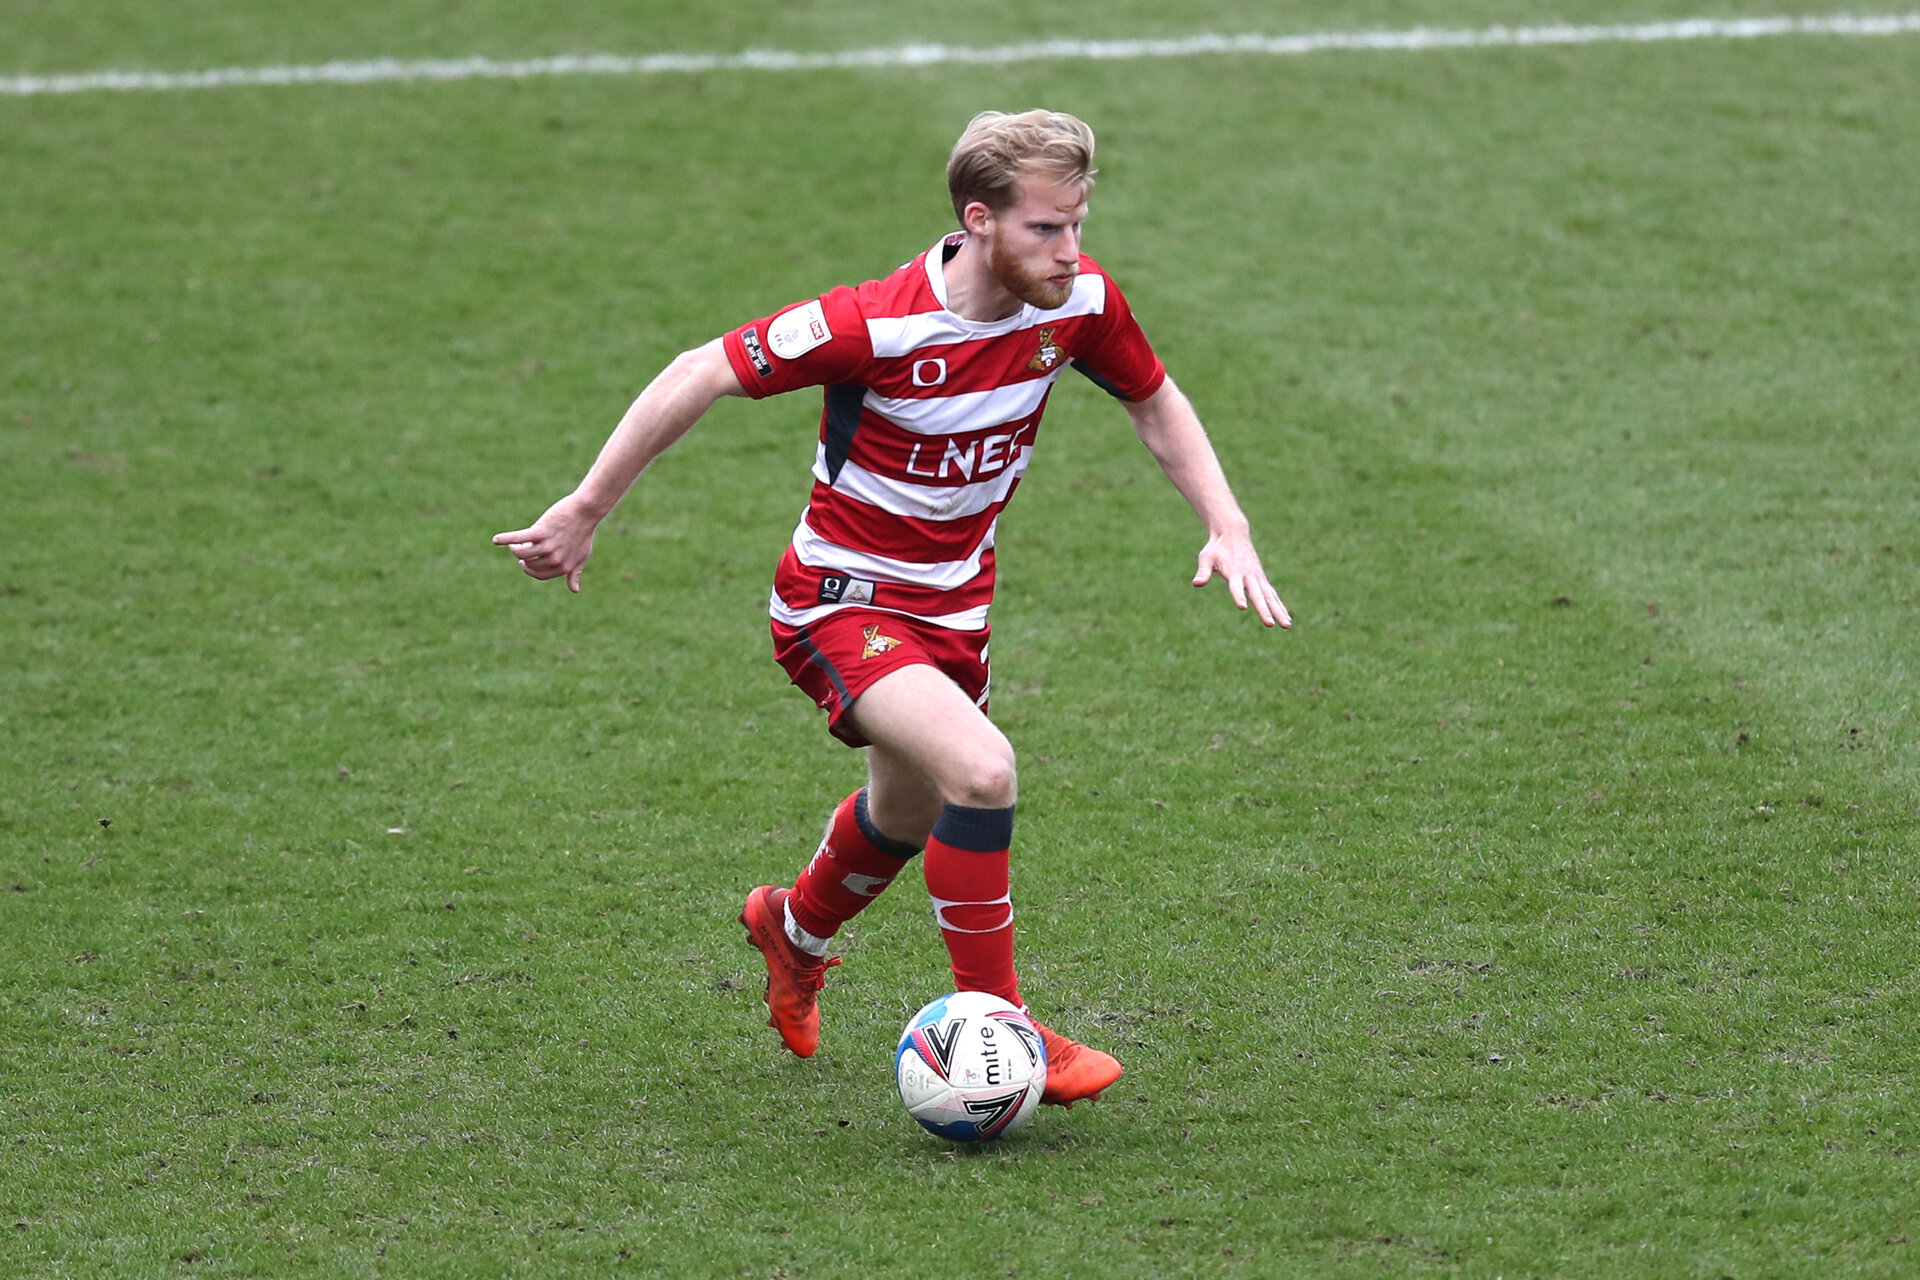 DONCASTER, ENGLAND - MARCH 06: Josh Sims of Doncaster Rovers runs with the ball during the Sky Bet League One match between Doncaster Rovers and Plymouth Argyle at Keepmoat Stadium on March 06, 2021 in Doncaster, England. Sporting stadiums around the UK remain under strict restrictions due to the Coronavirus Pandemic as Government social distancing laws prohibit fans inside venues resulting in games being played behind closed doors. (Photo by George Wood/Getty Images)